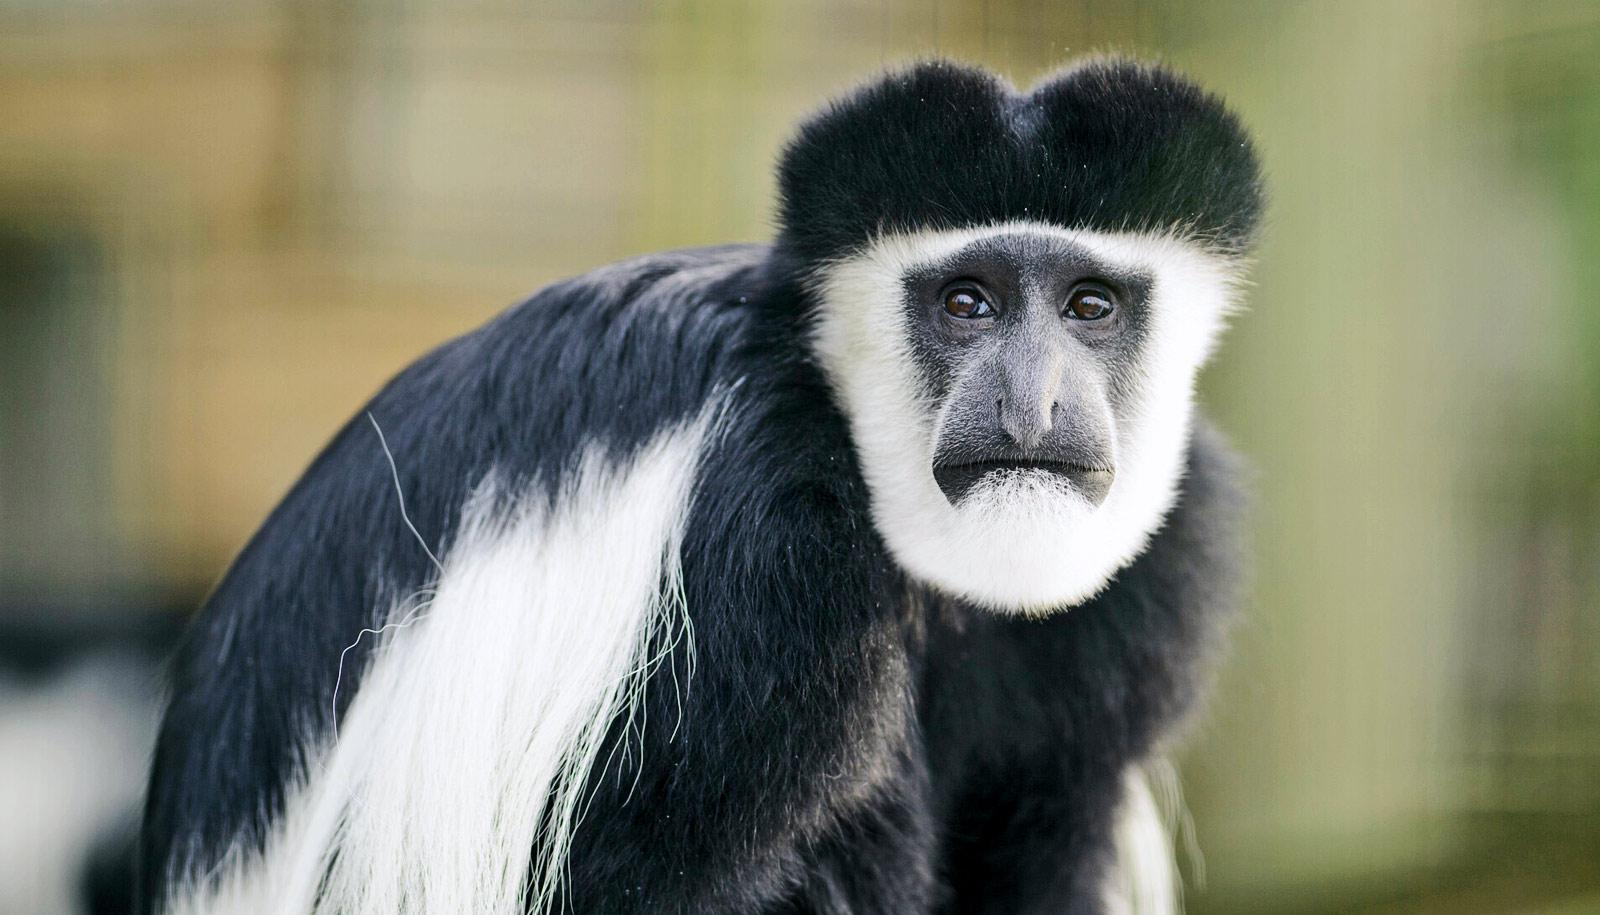 Colobus monkey with black and white fur